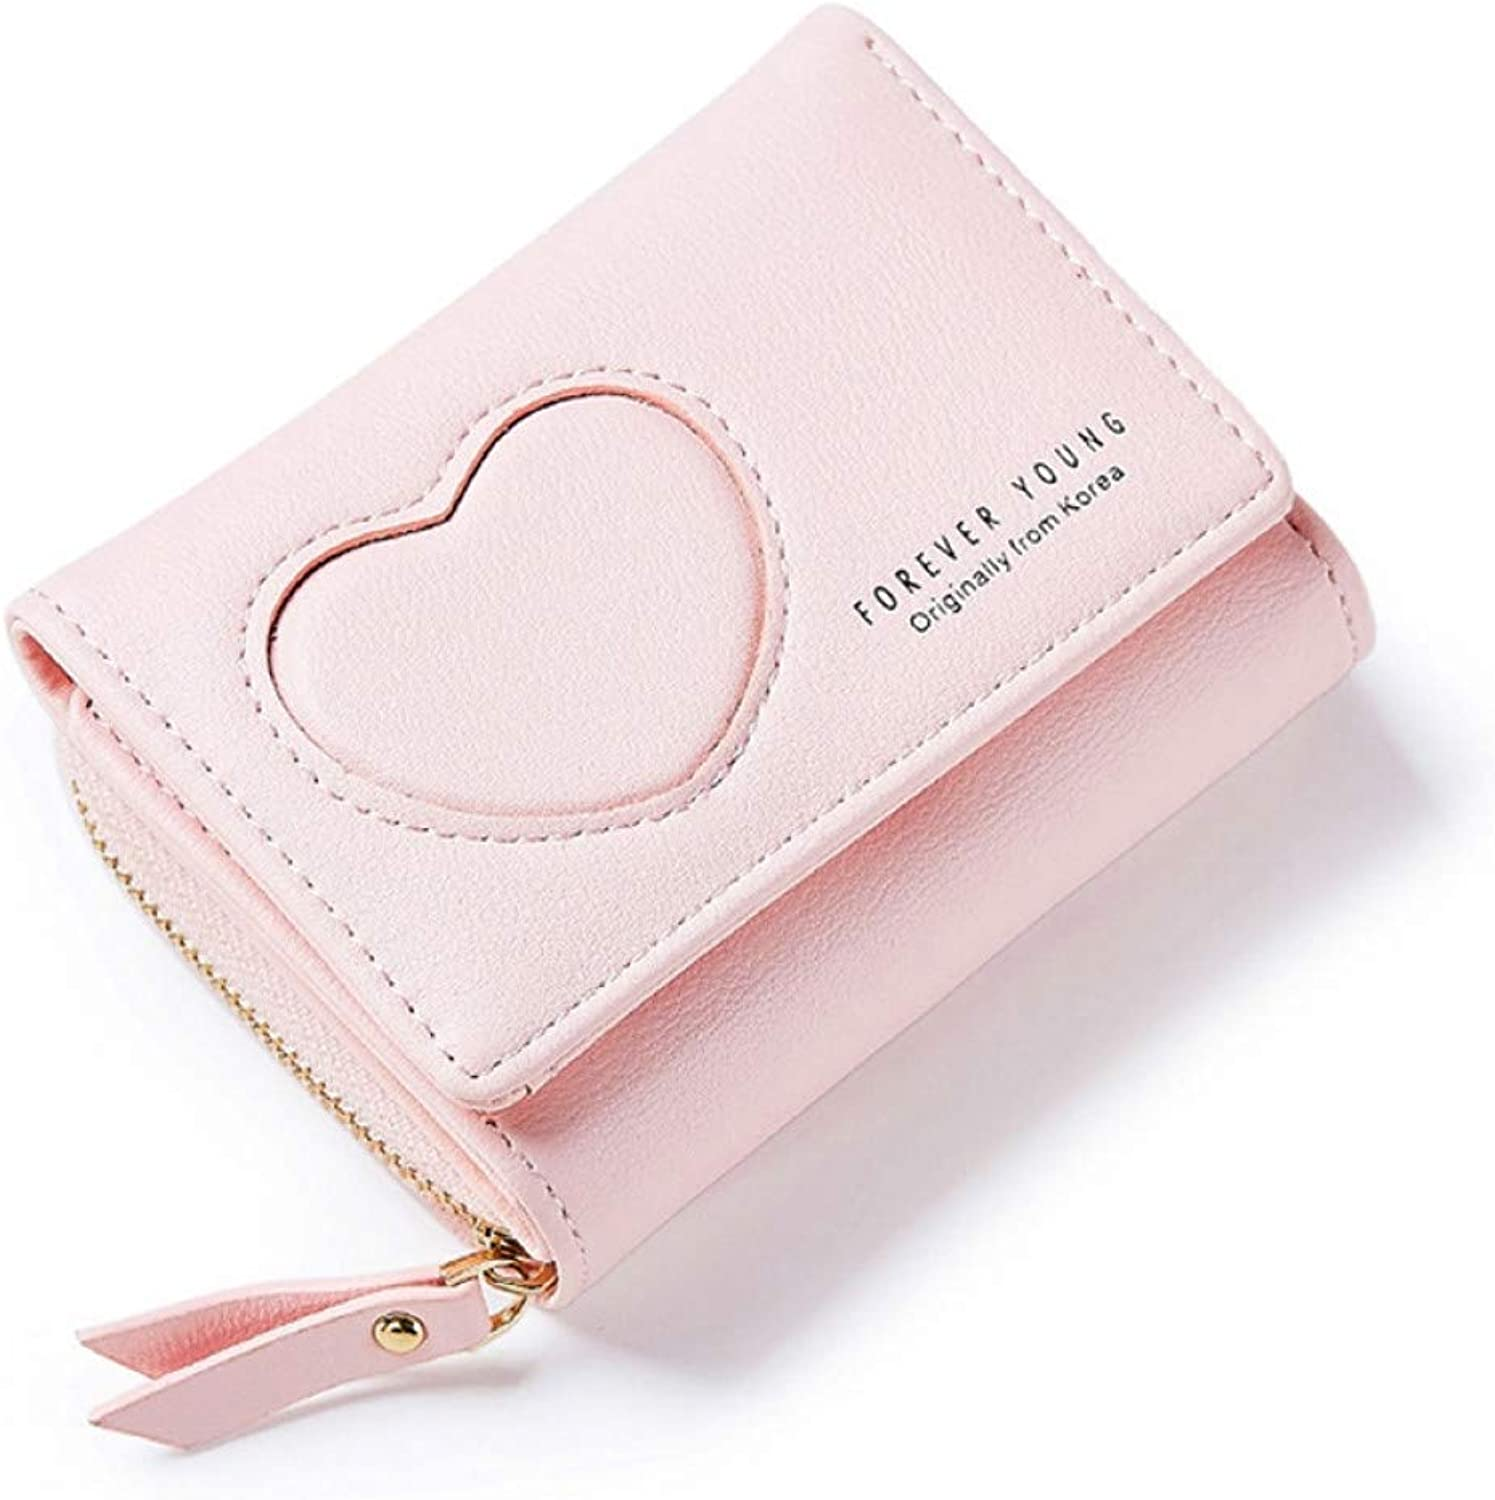 KHGUDS Brand Korean Style Fresh Heart Patter Women Wallets Soft Leather Girls Small Purse Female Wallet with Coin Card Holder